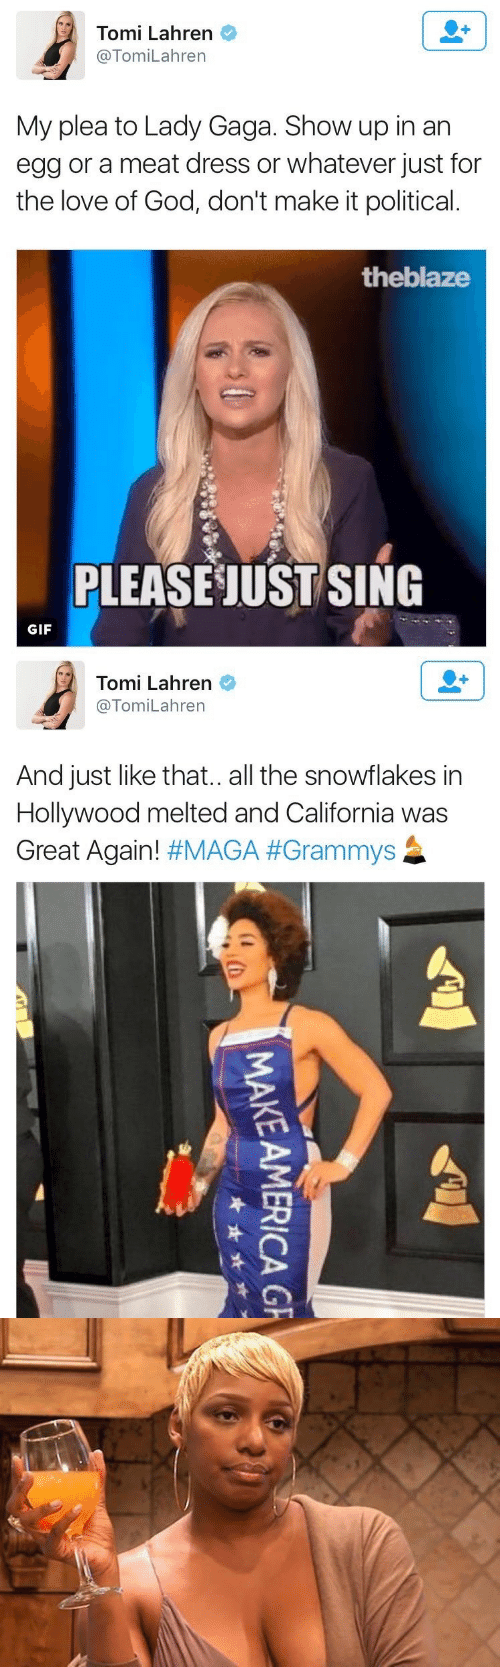 Great Again: Tomi Lahren  @TomiLahren  My plea to Lady Gaga. Show up in an  egg or a meat dress or whatever just for  the love of God, don't make it political.  theblaze  PLEASE JUST SING  GIF   Tomi Lahren  @TomiLahren  And just like that.. all the snowflakes in  Hollywood melted and California was  Great Again! #MAGA #Grammys  MAKE AMERICA G